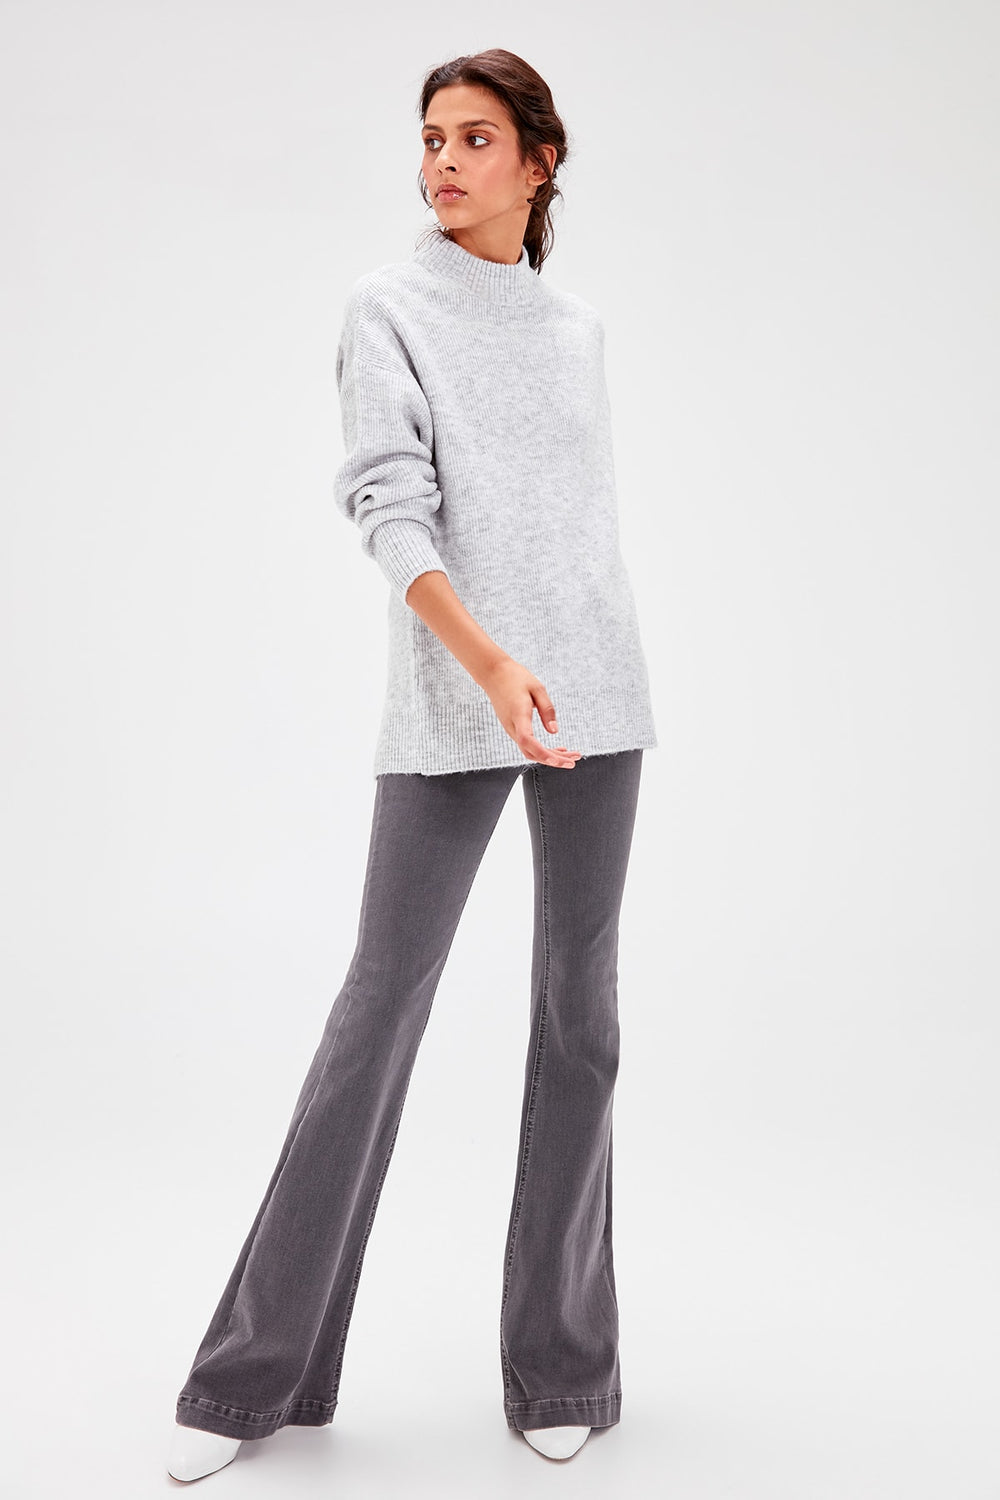 Gray Back Low-Cut Sweater - Top Maxy